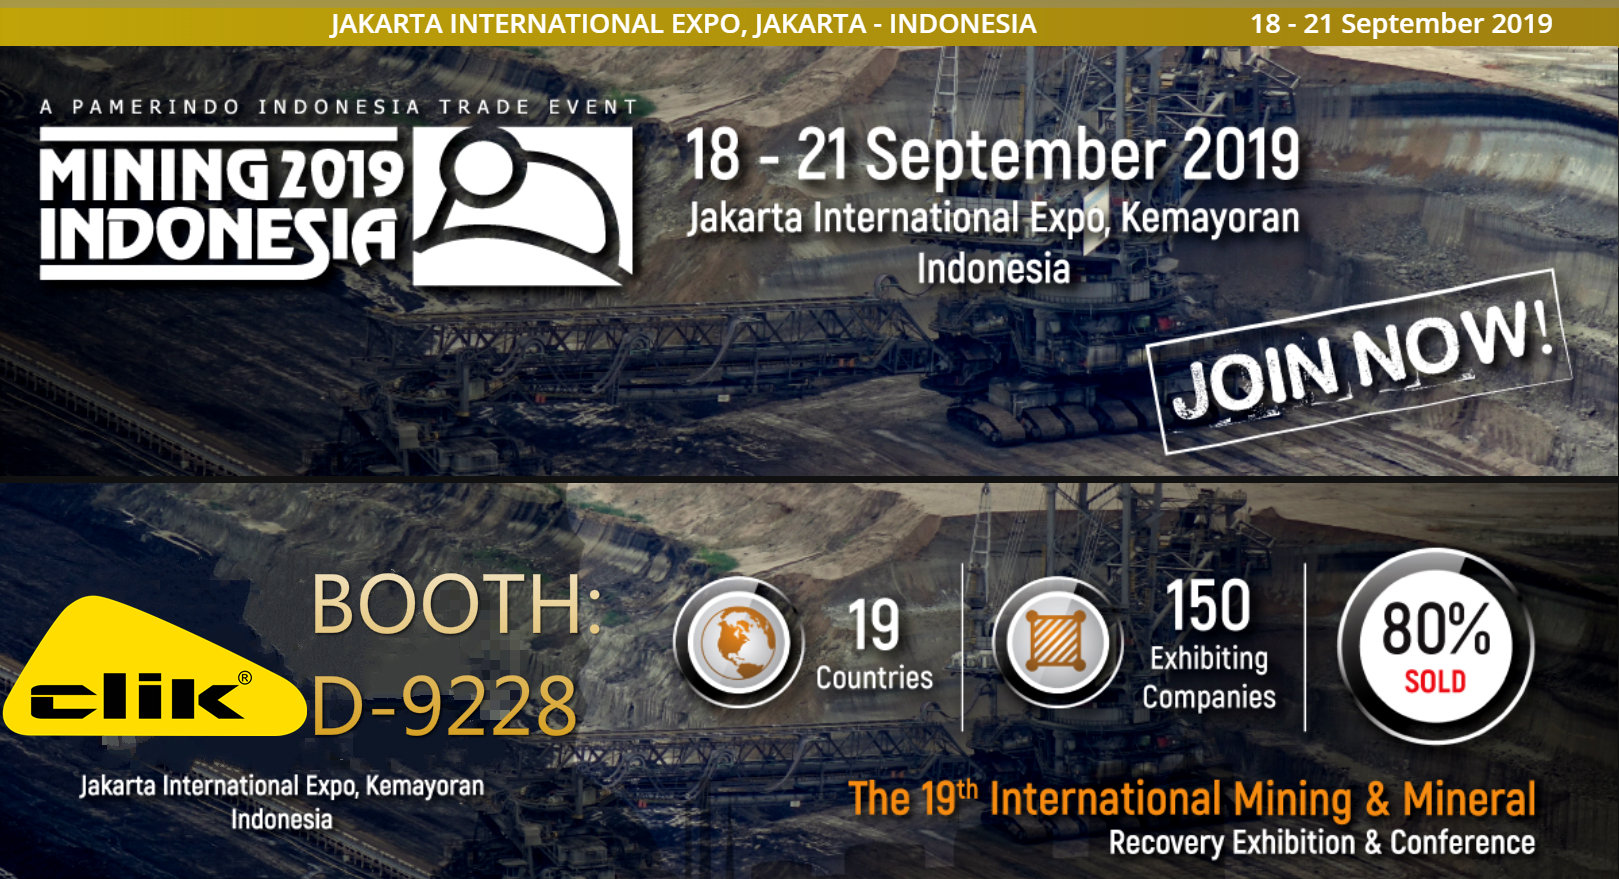 Mining Indonesia 2019 to start. Meet CLIK at Booth: D-9228